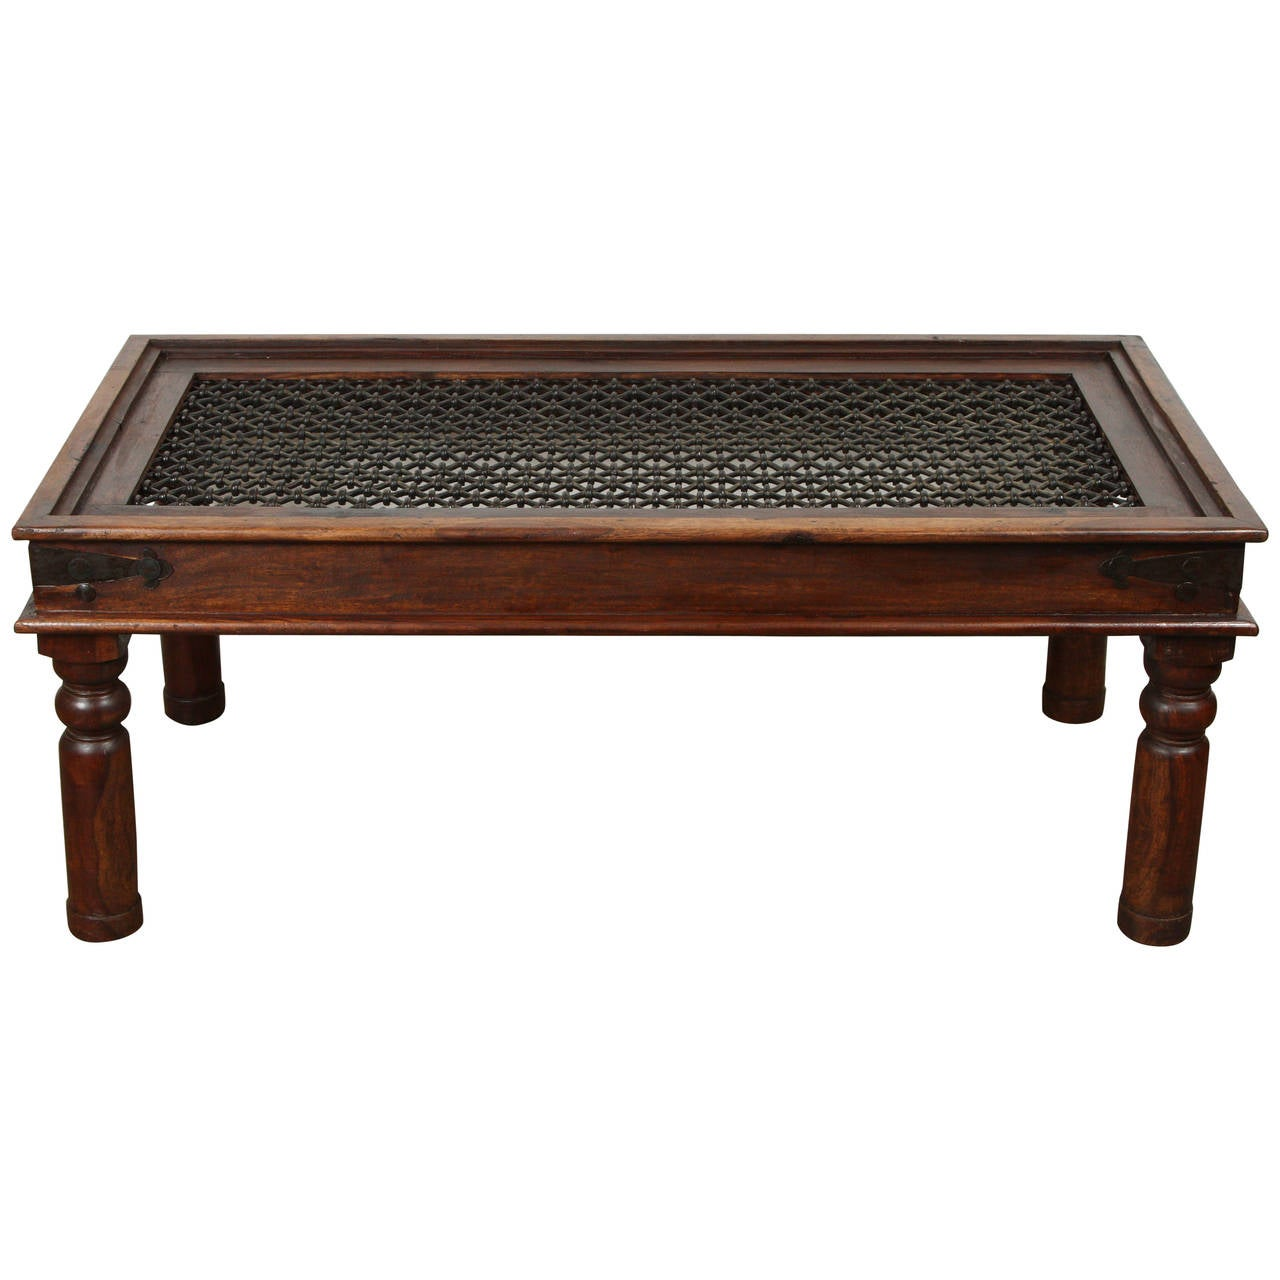 Spanish style coffee table with iron at 1stdibs for Table in spanish